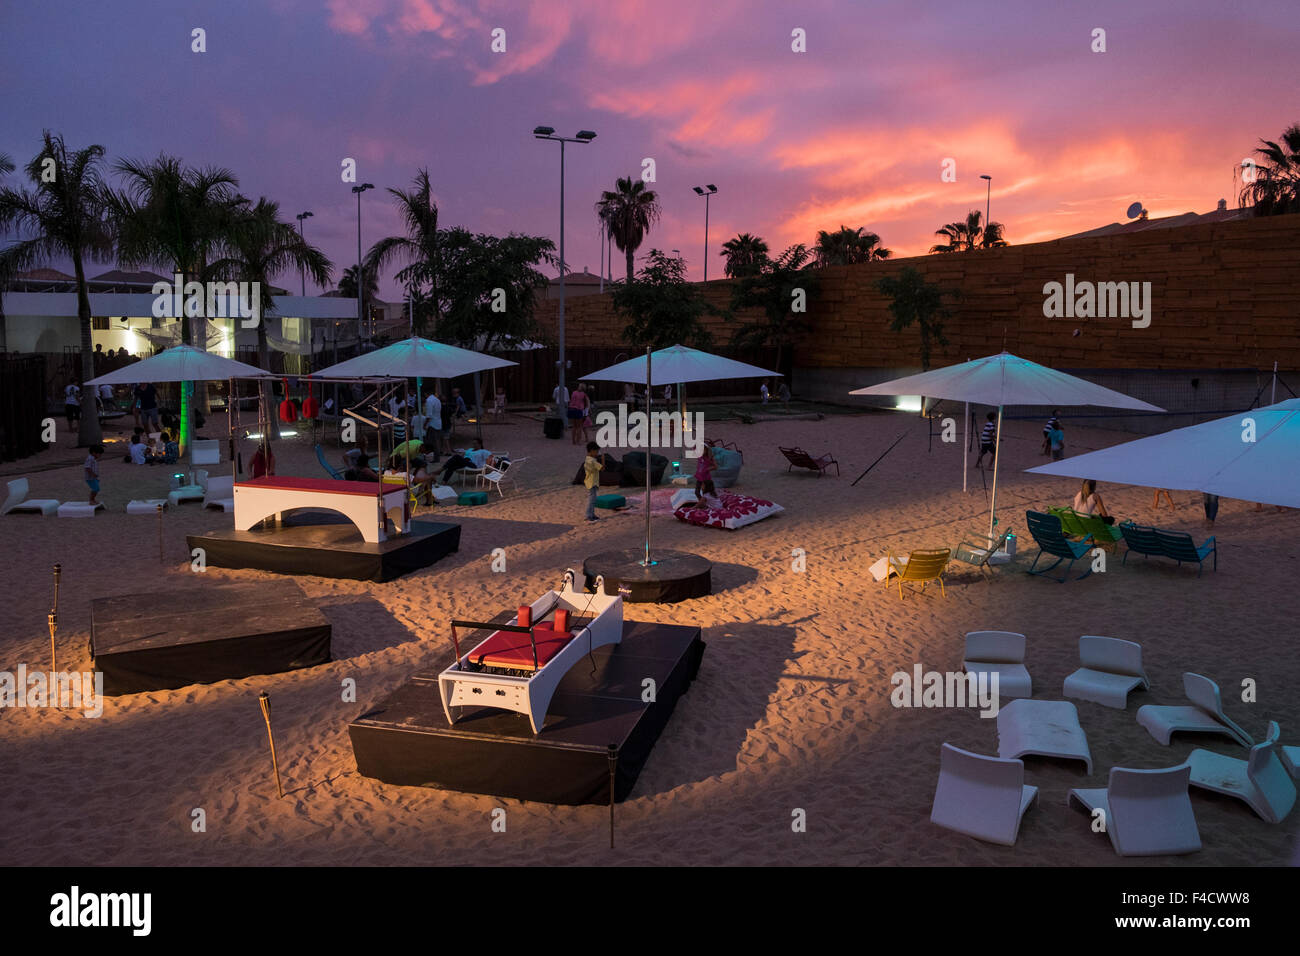 Artifical beach at the Activate sports club in Baobab Suites five star resort in Costa Adeje, Tenerife, Canary Islands, - Stock Image